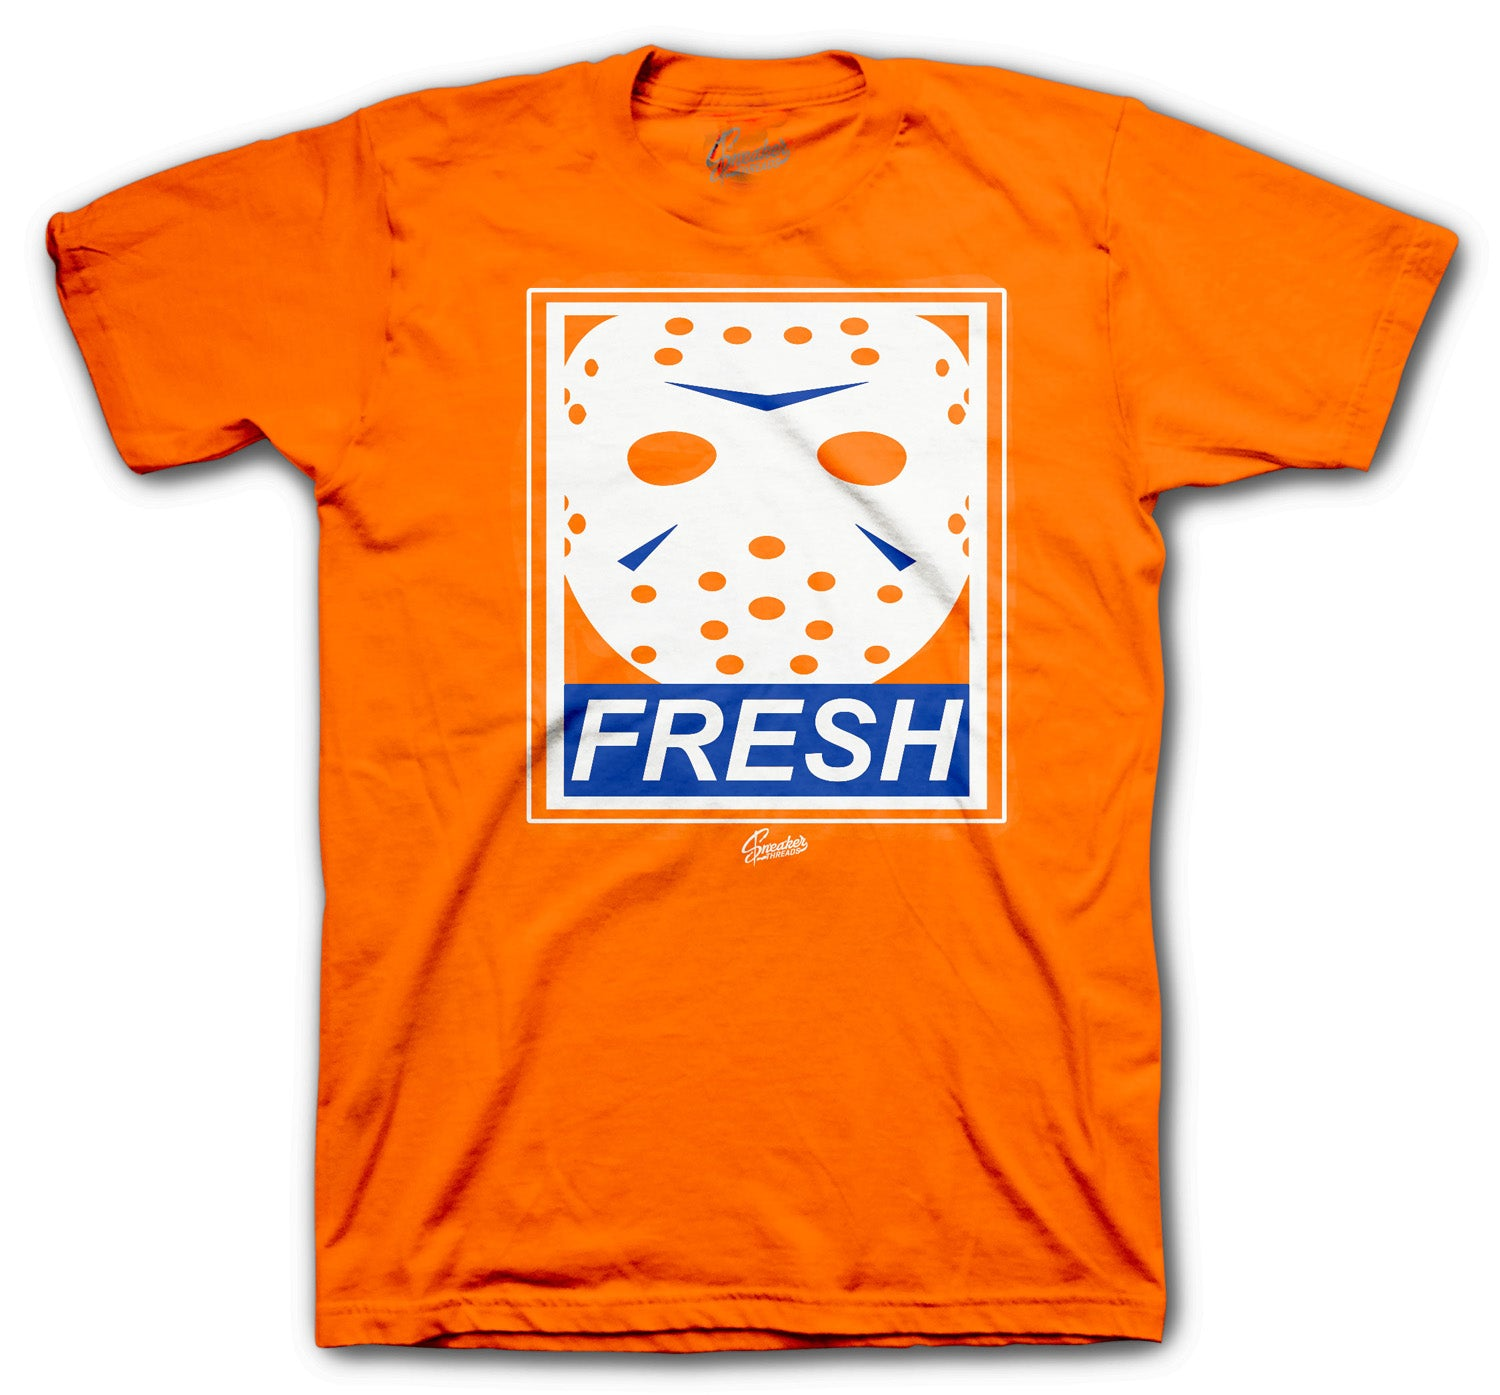 Retro knick Jordan 3s matching t shirts created to match perfectly  with the Jordan 3 retro sneakers